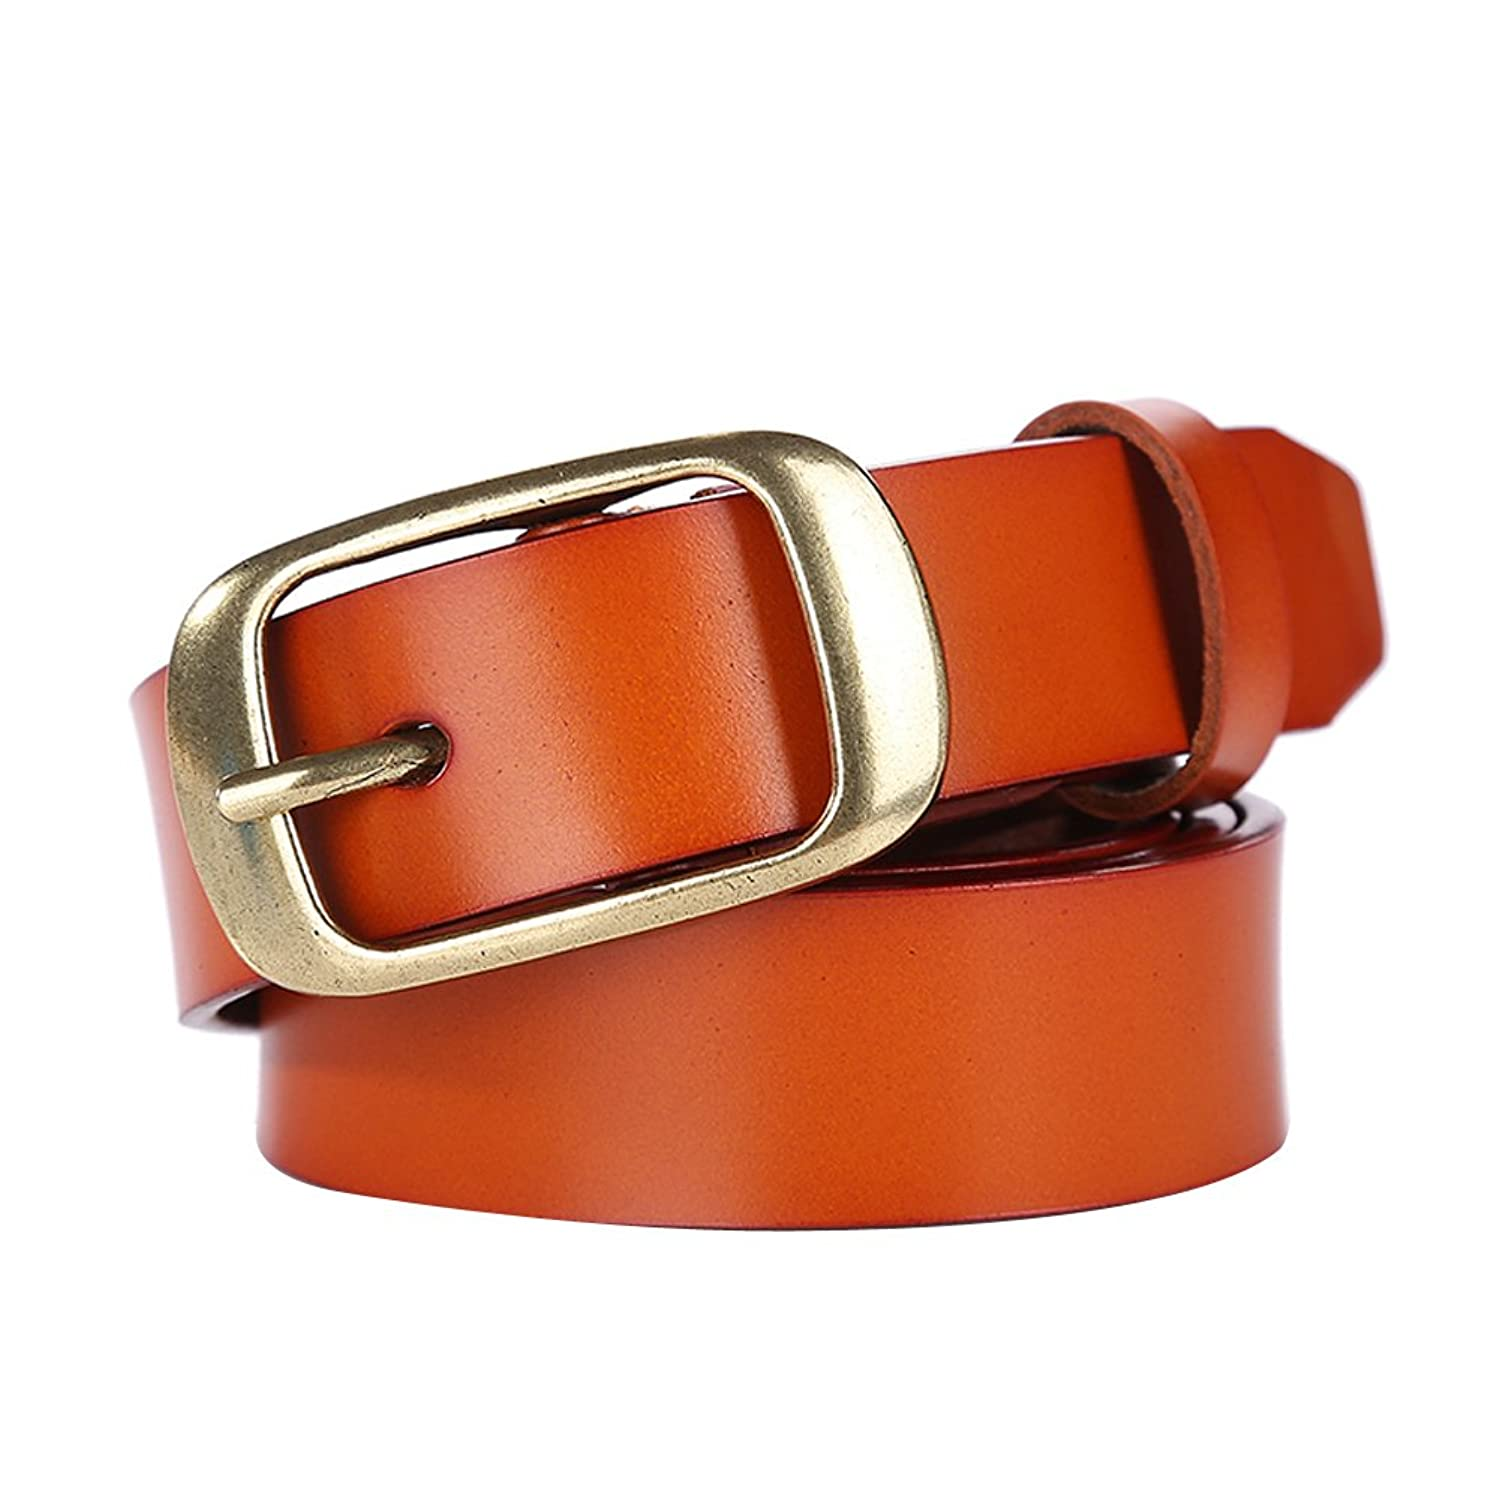 Women's Genuine Leather Belts Vintage Textured Belt with Copper Tone Alloy Pin Buckle